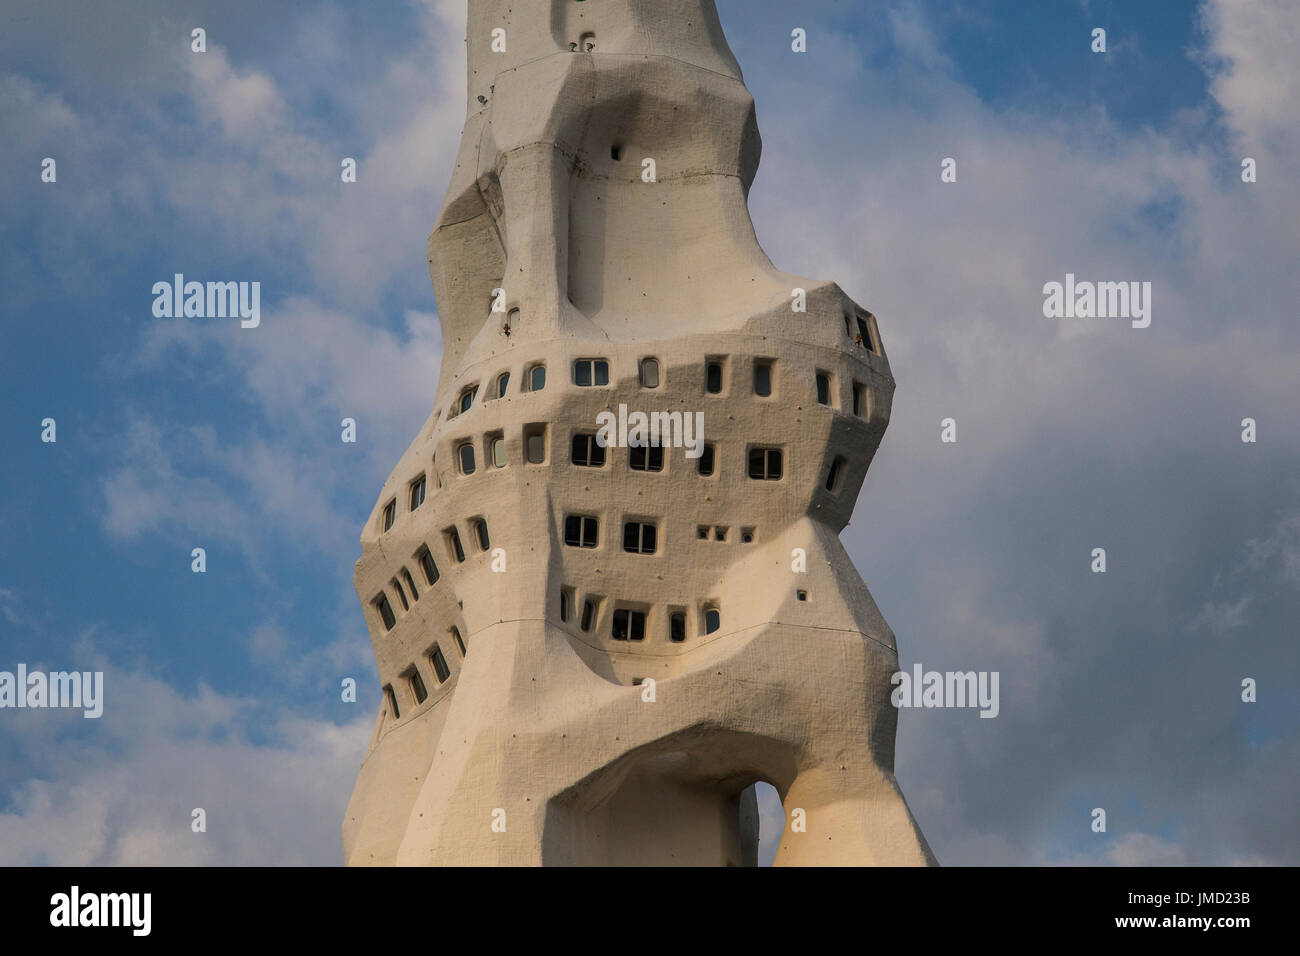 What may appear to be cultish and weird, the PL Peace Tower and the religious belief behind it is actually interesting and doesn't sound as creepy as  - Stock Image